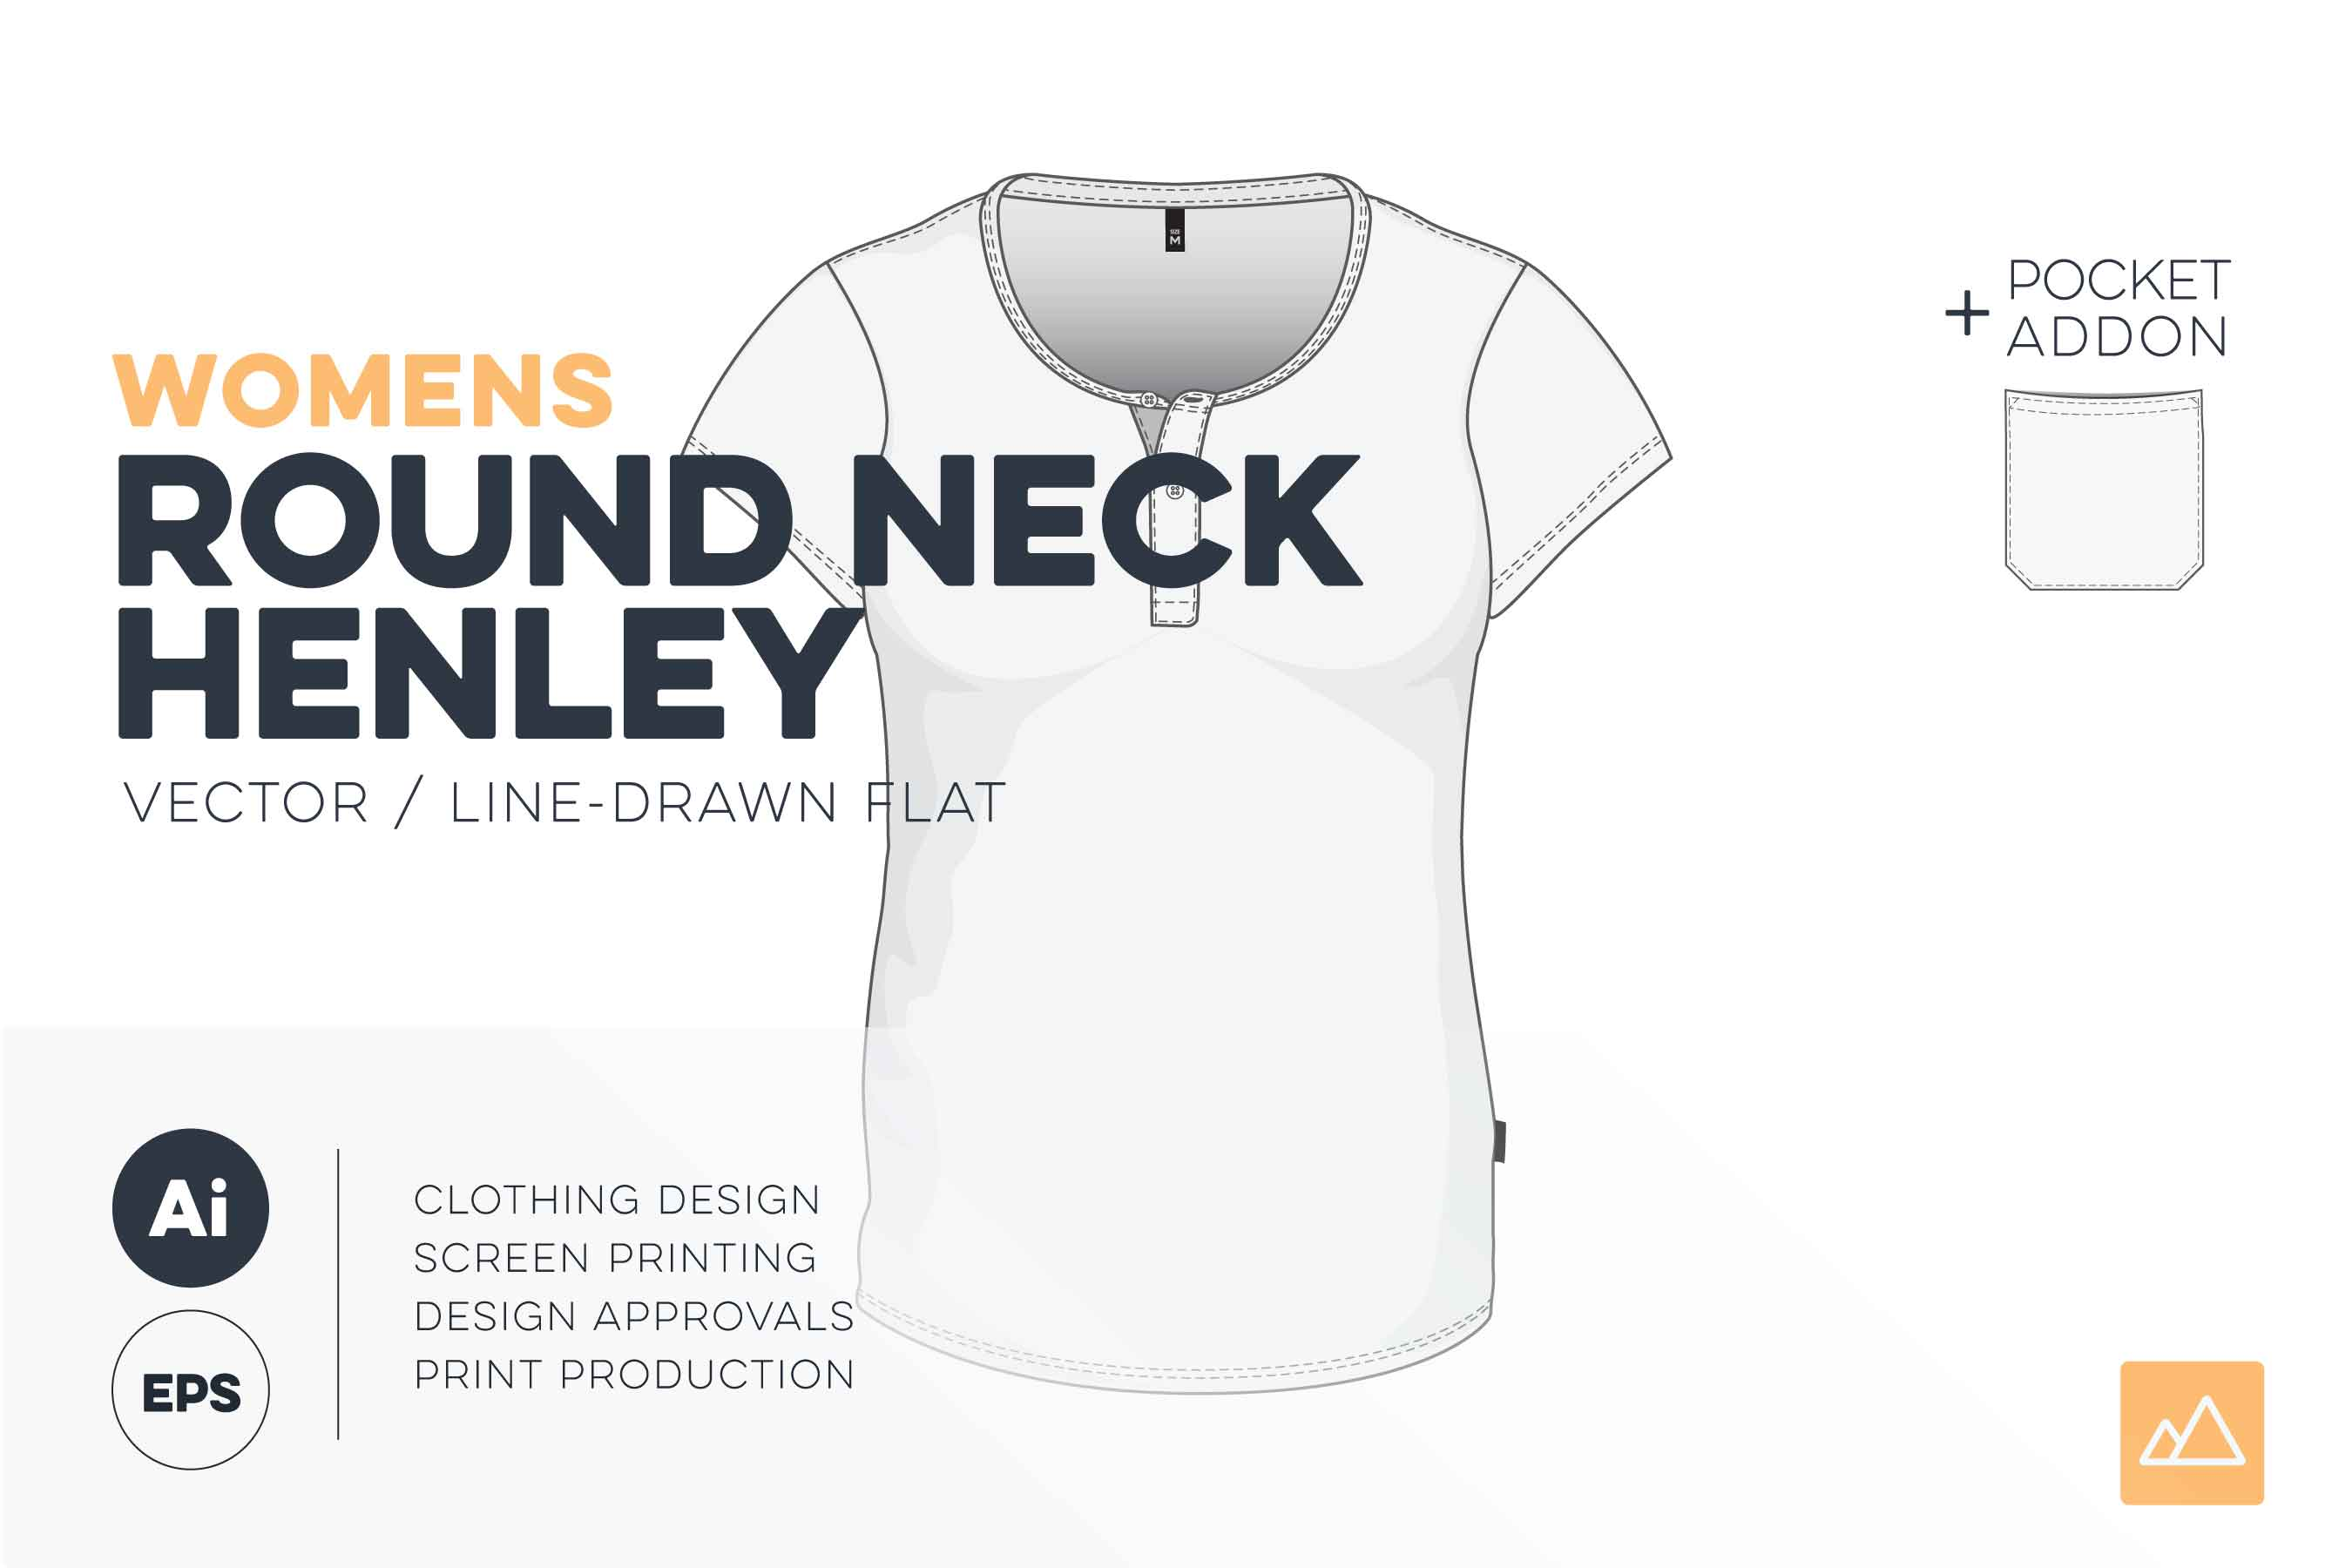 Womens round neck henley t-shirt template vector pack HERO